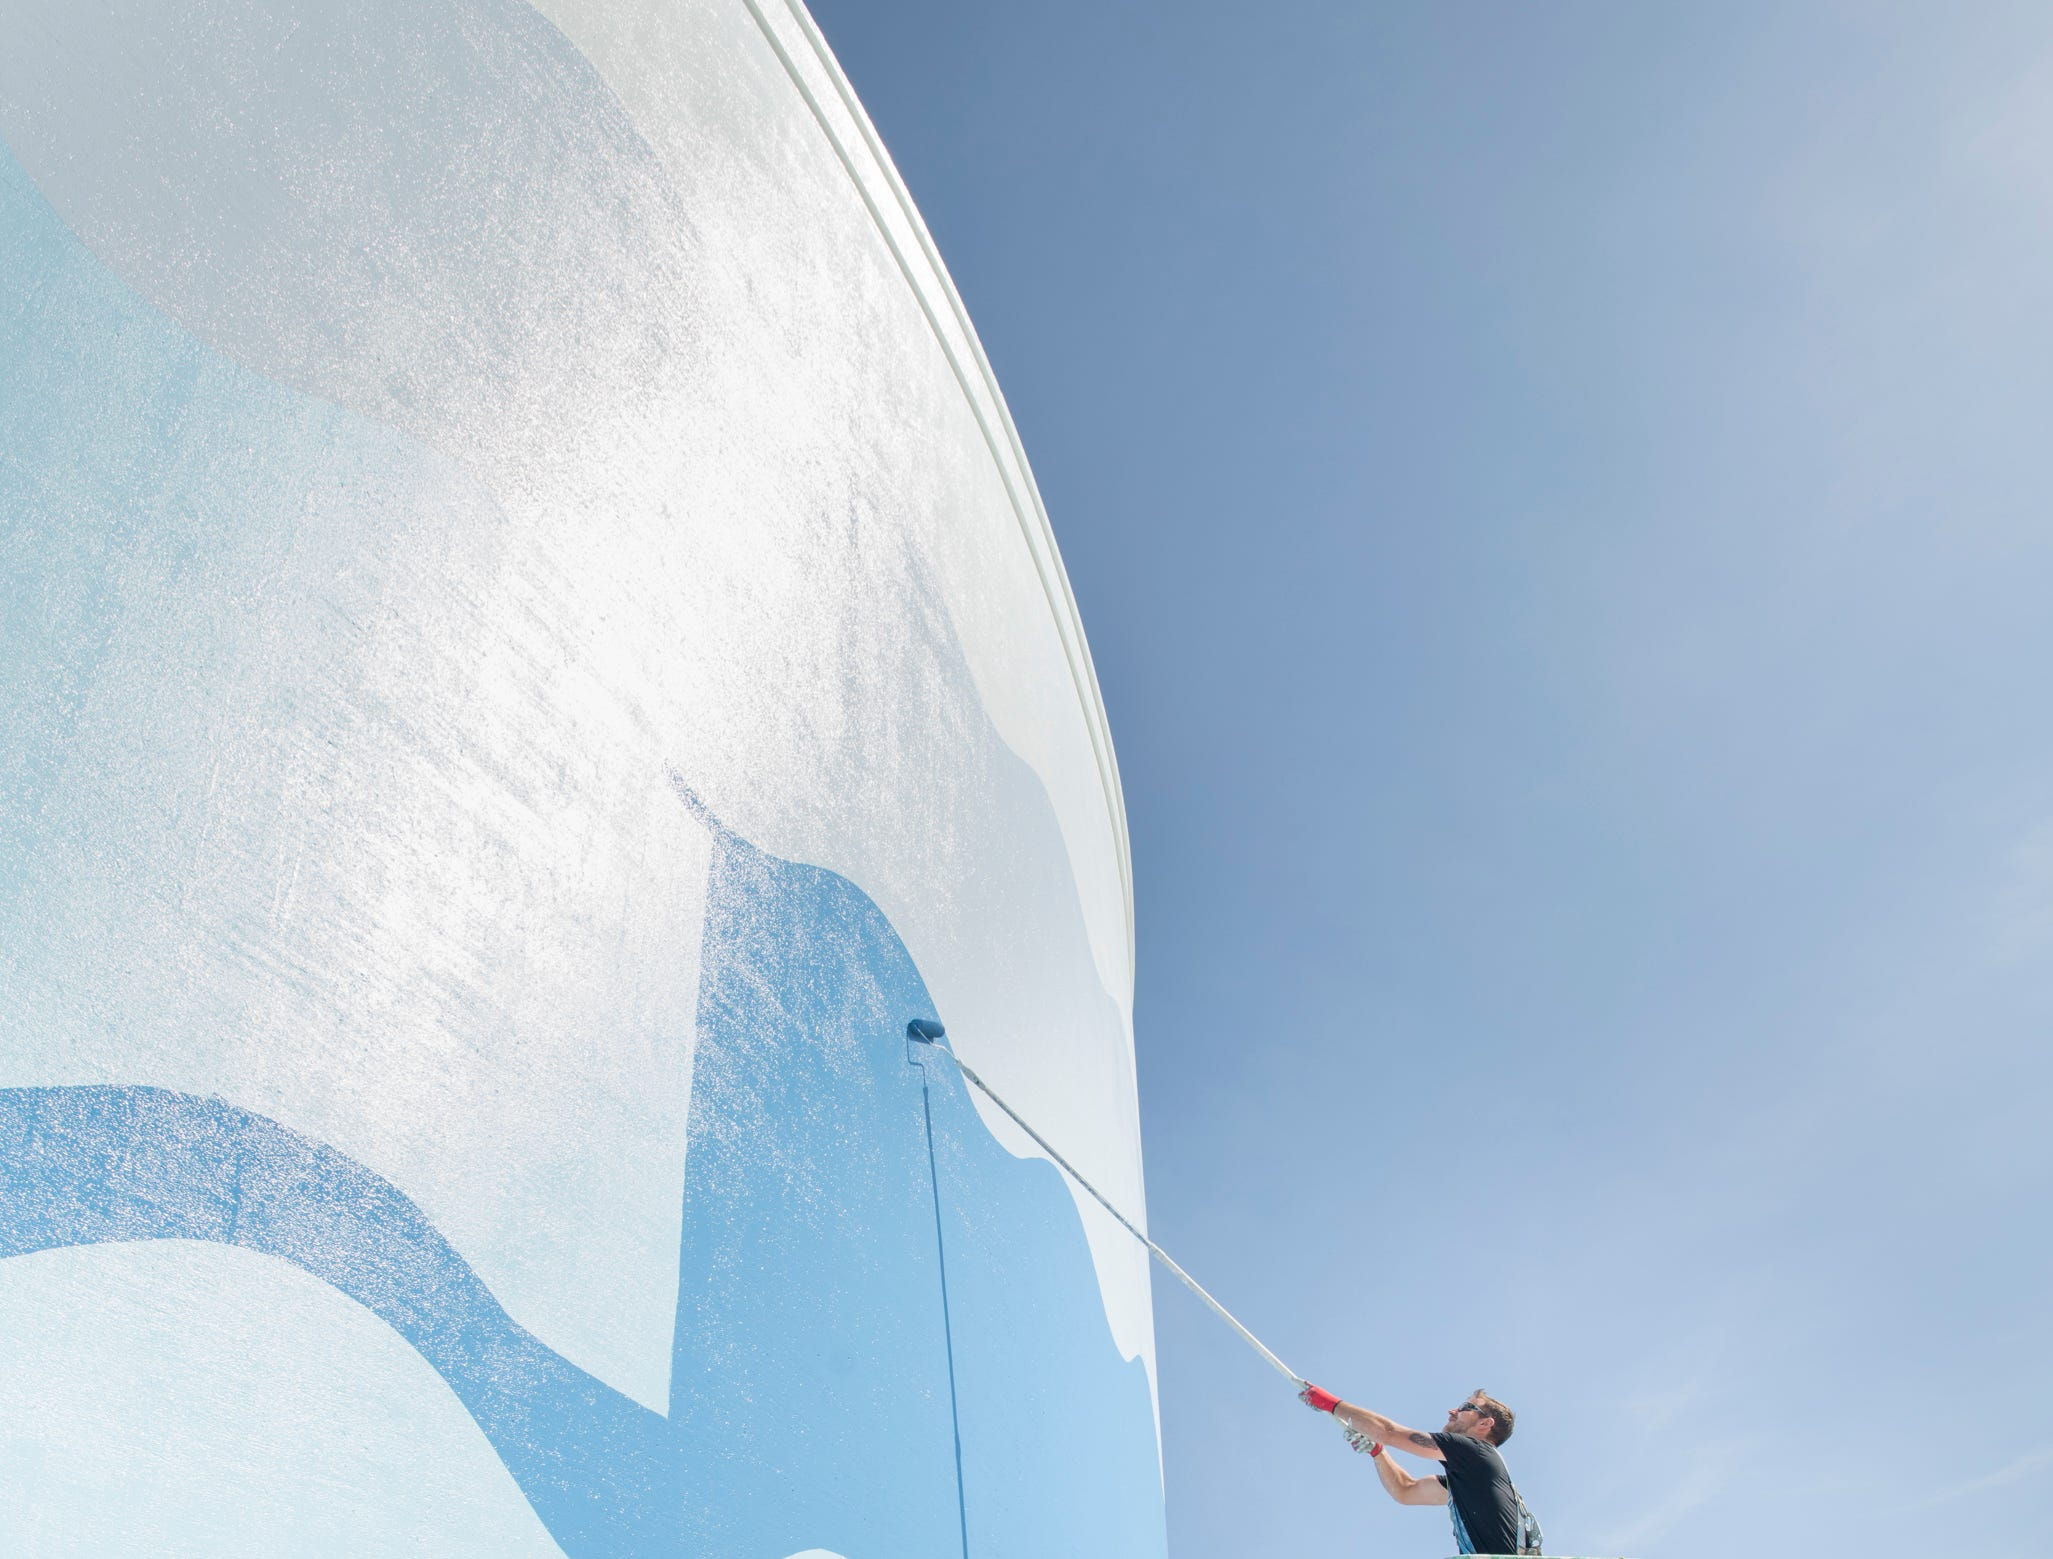 Robert Lawson, of Jetco Ltd., bottom, looks up as coworker Michael Wiegel paints the newest water tower along Pensacola Beach Blvd. in Pensacola Beach on Thursday, April 11, 2019.